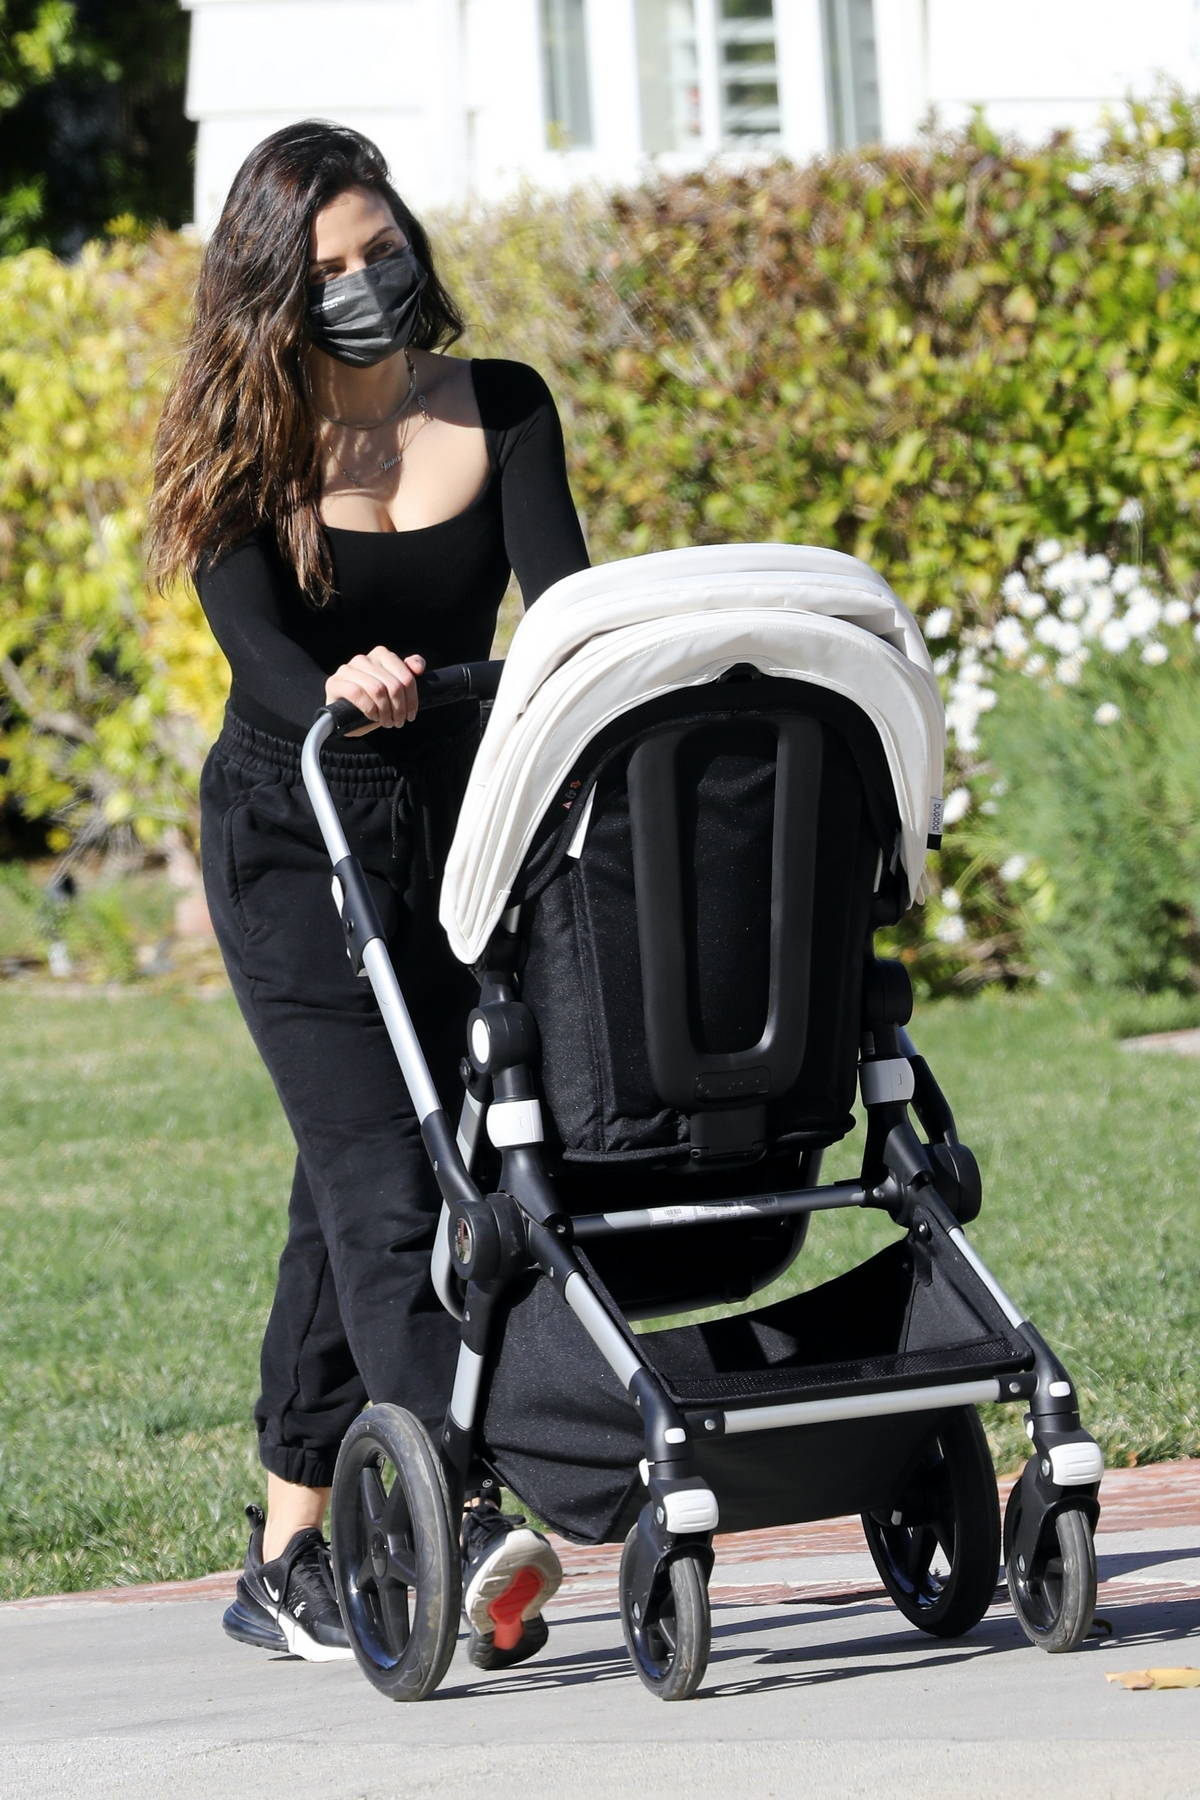 Jenna Dewan dons all-black as she steps out for a stroll with her son in Los Angeles